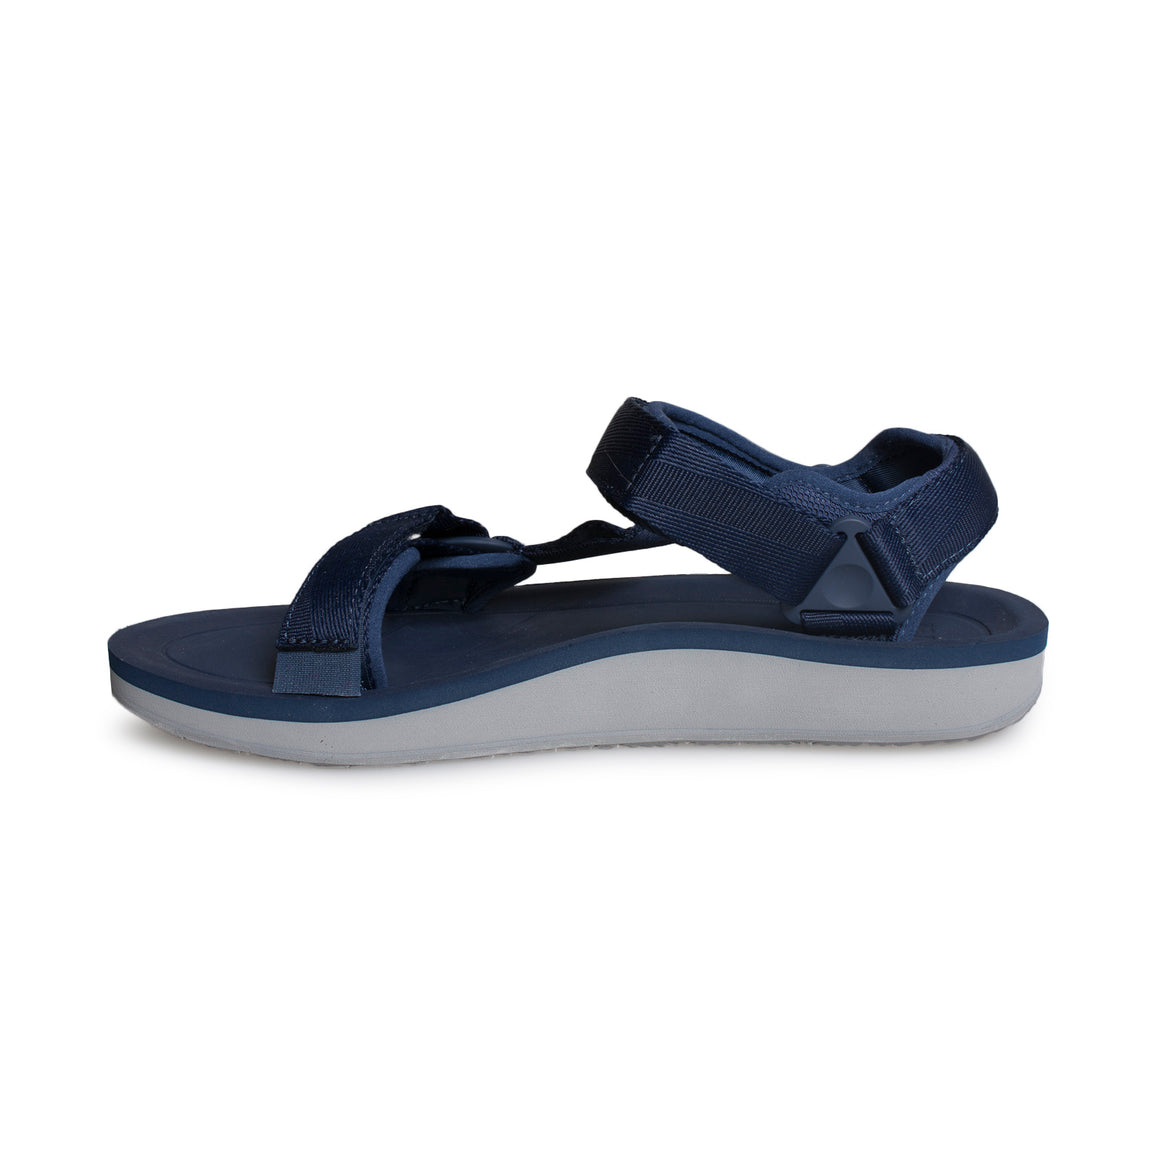 Teva Original Universal Premier Navy Sandals - Men's